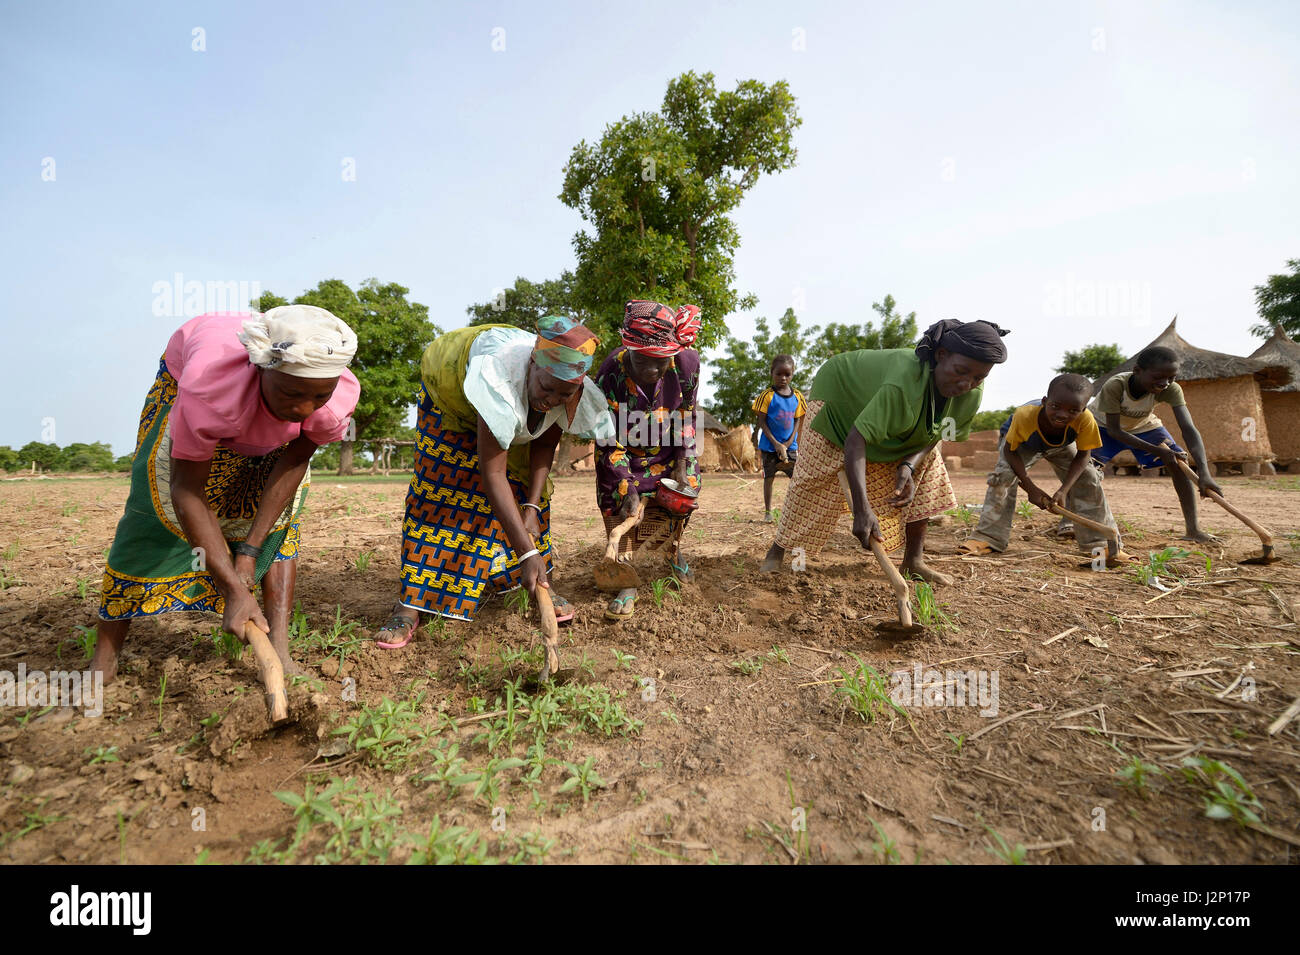 Women and children working a field with hoes, Toeghin village, Oubritenga province, Plateau Central region, Burkina - Stock Image